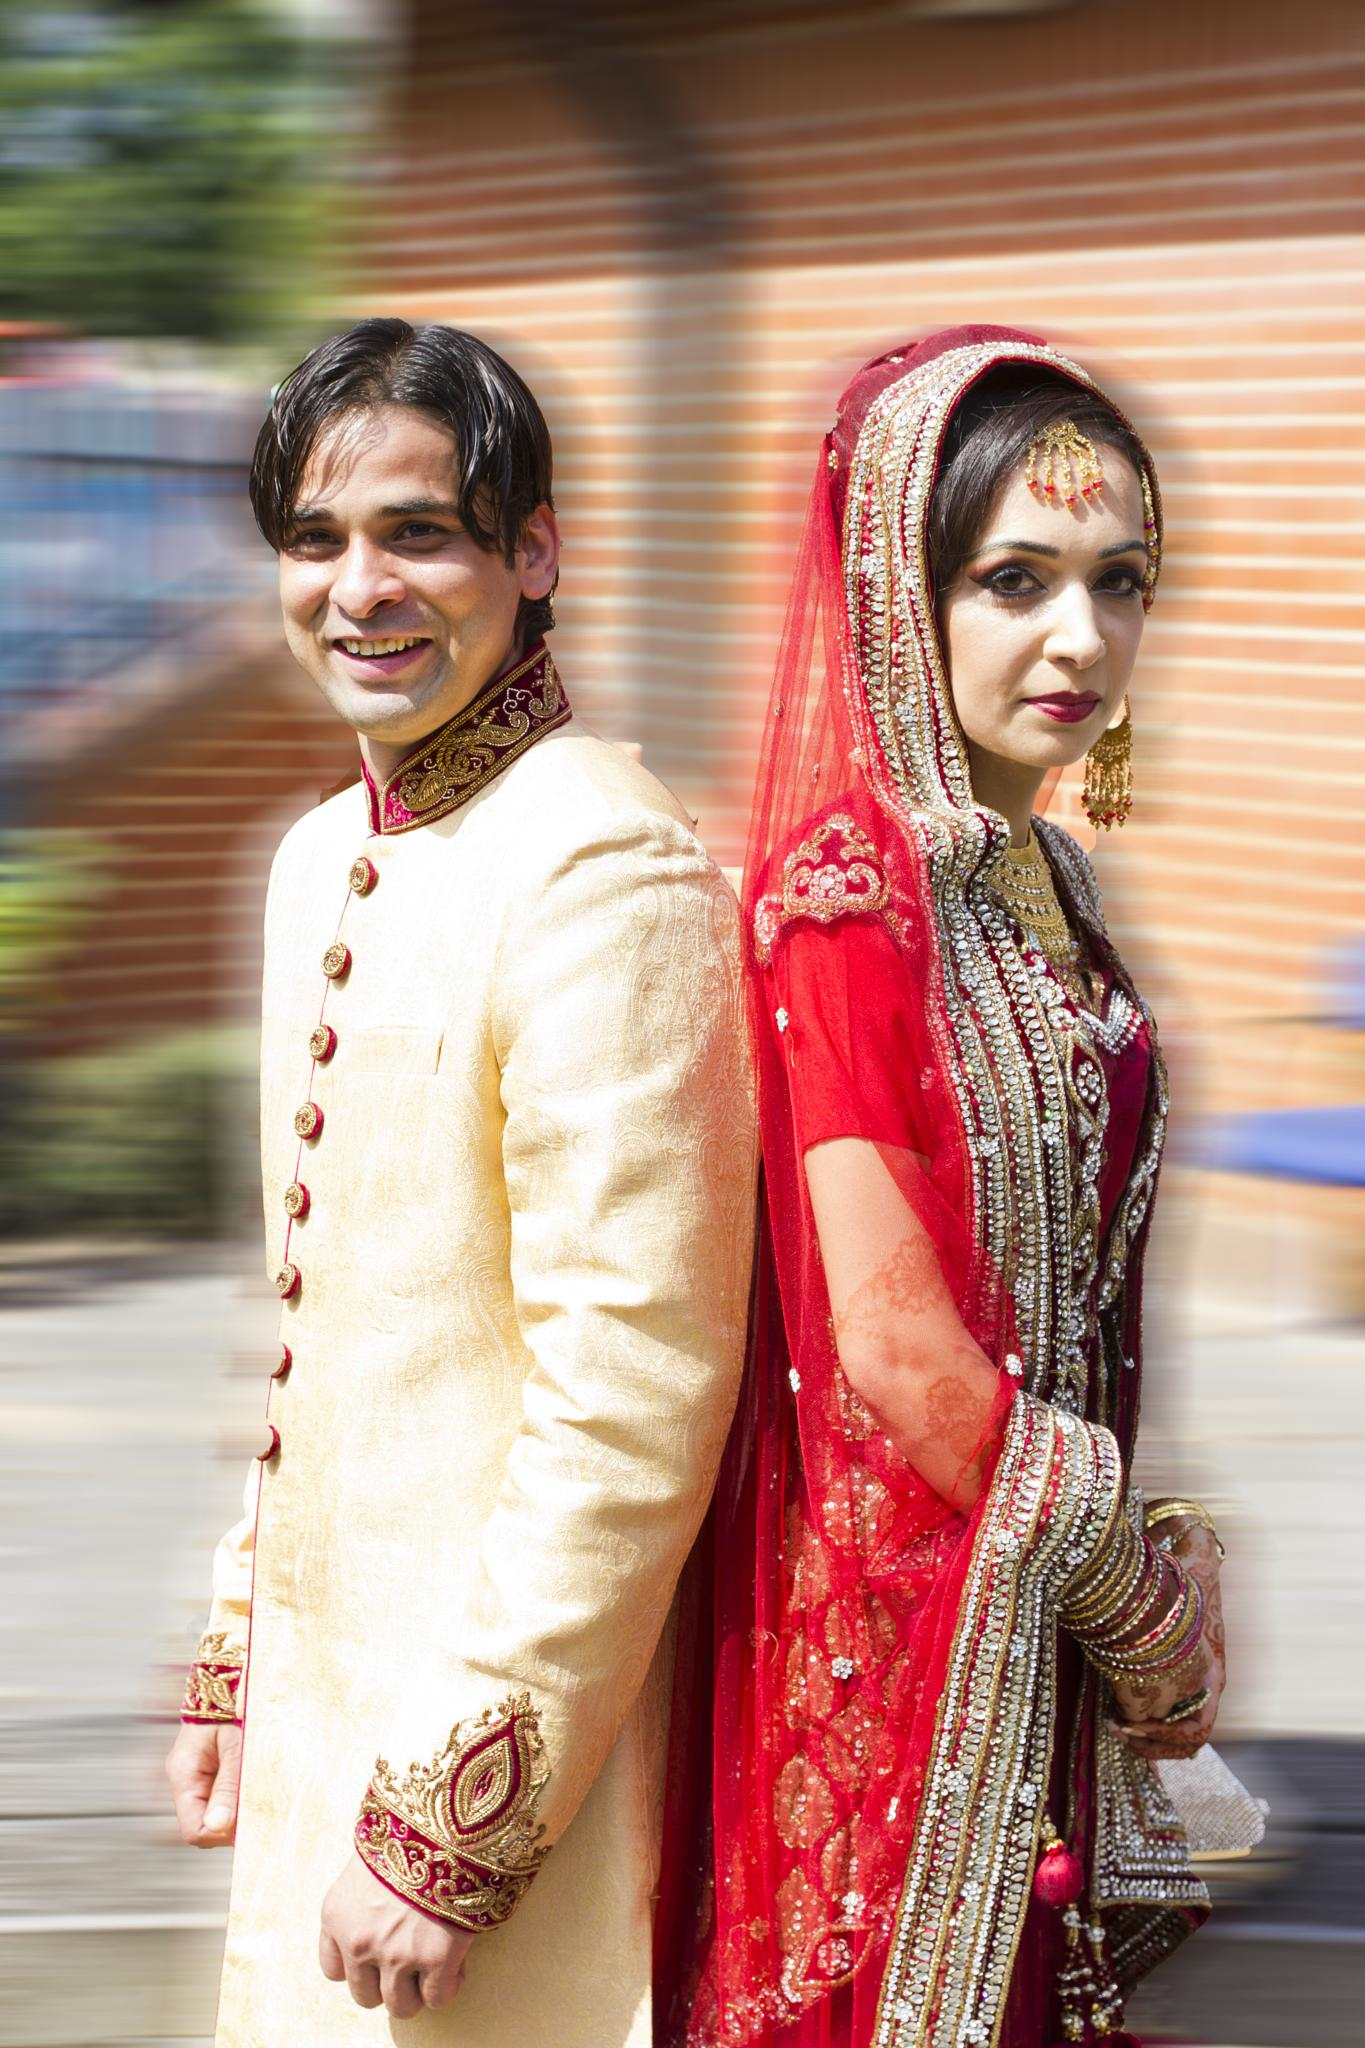 Bride and groom by Muhammad Khan